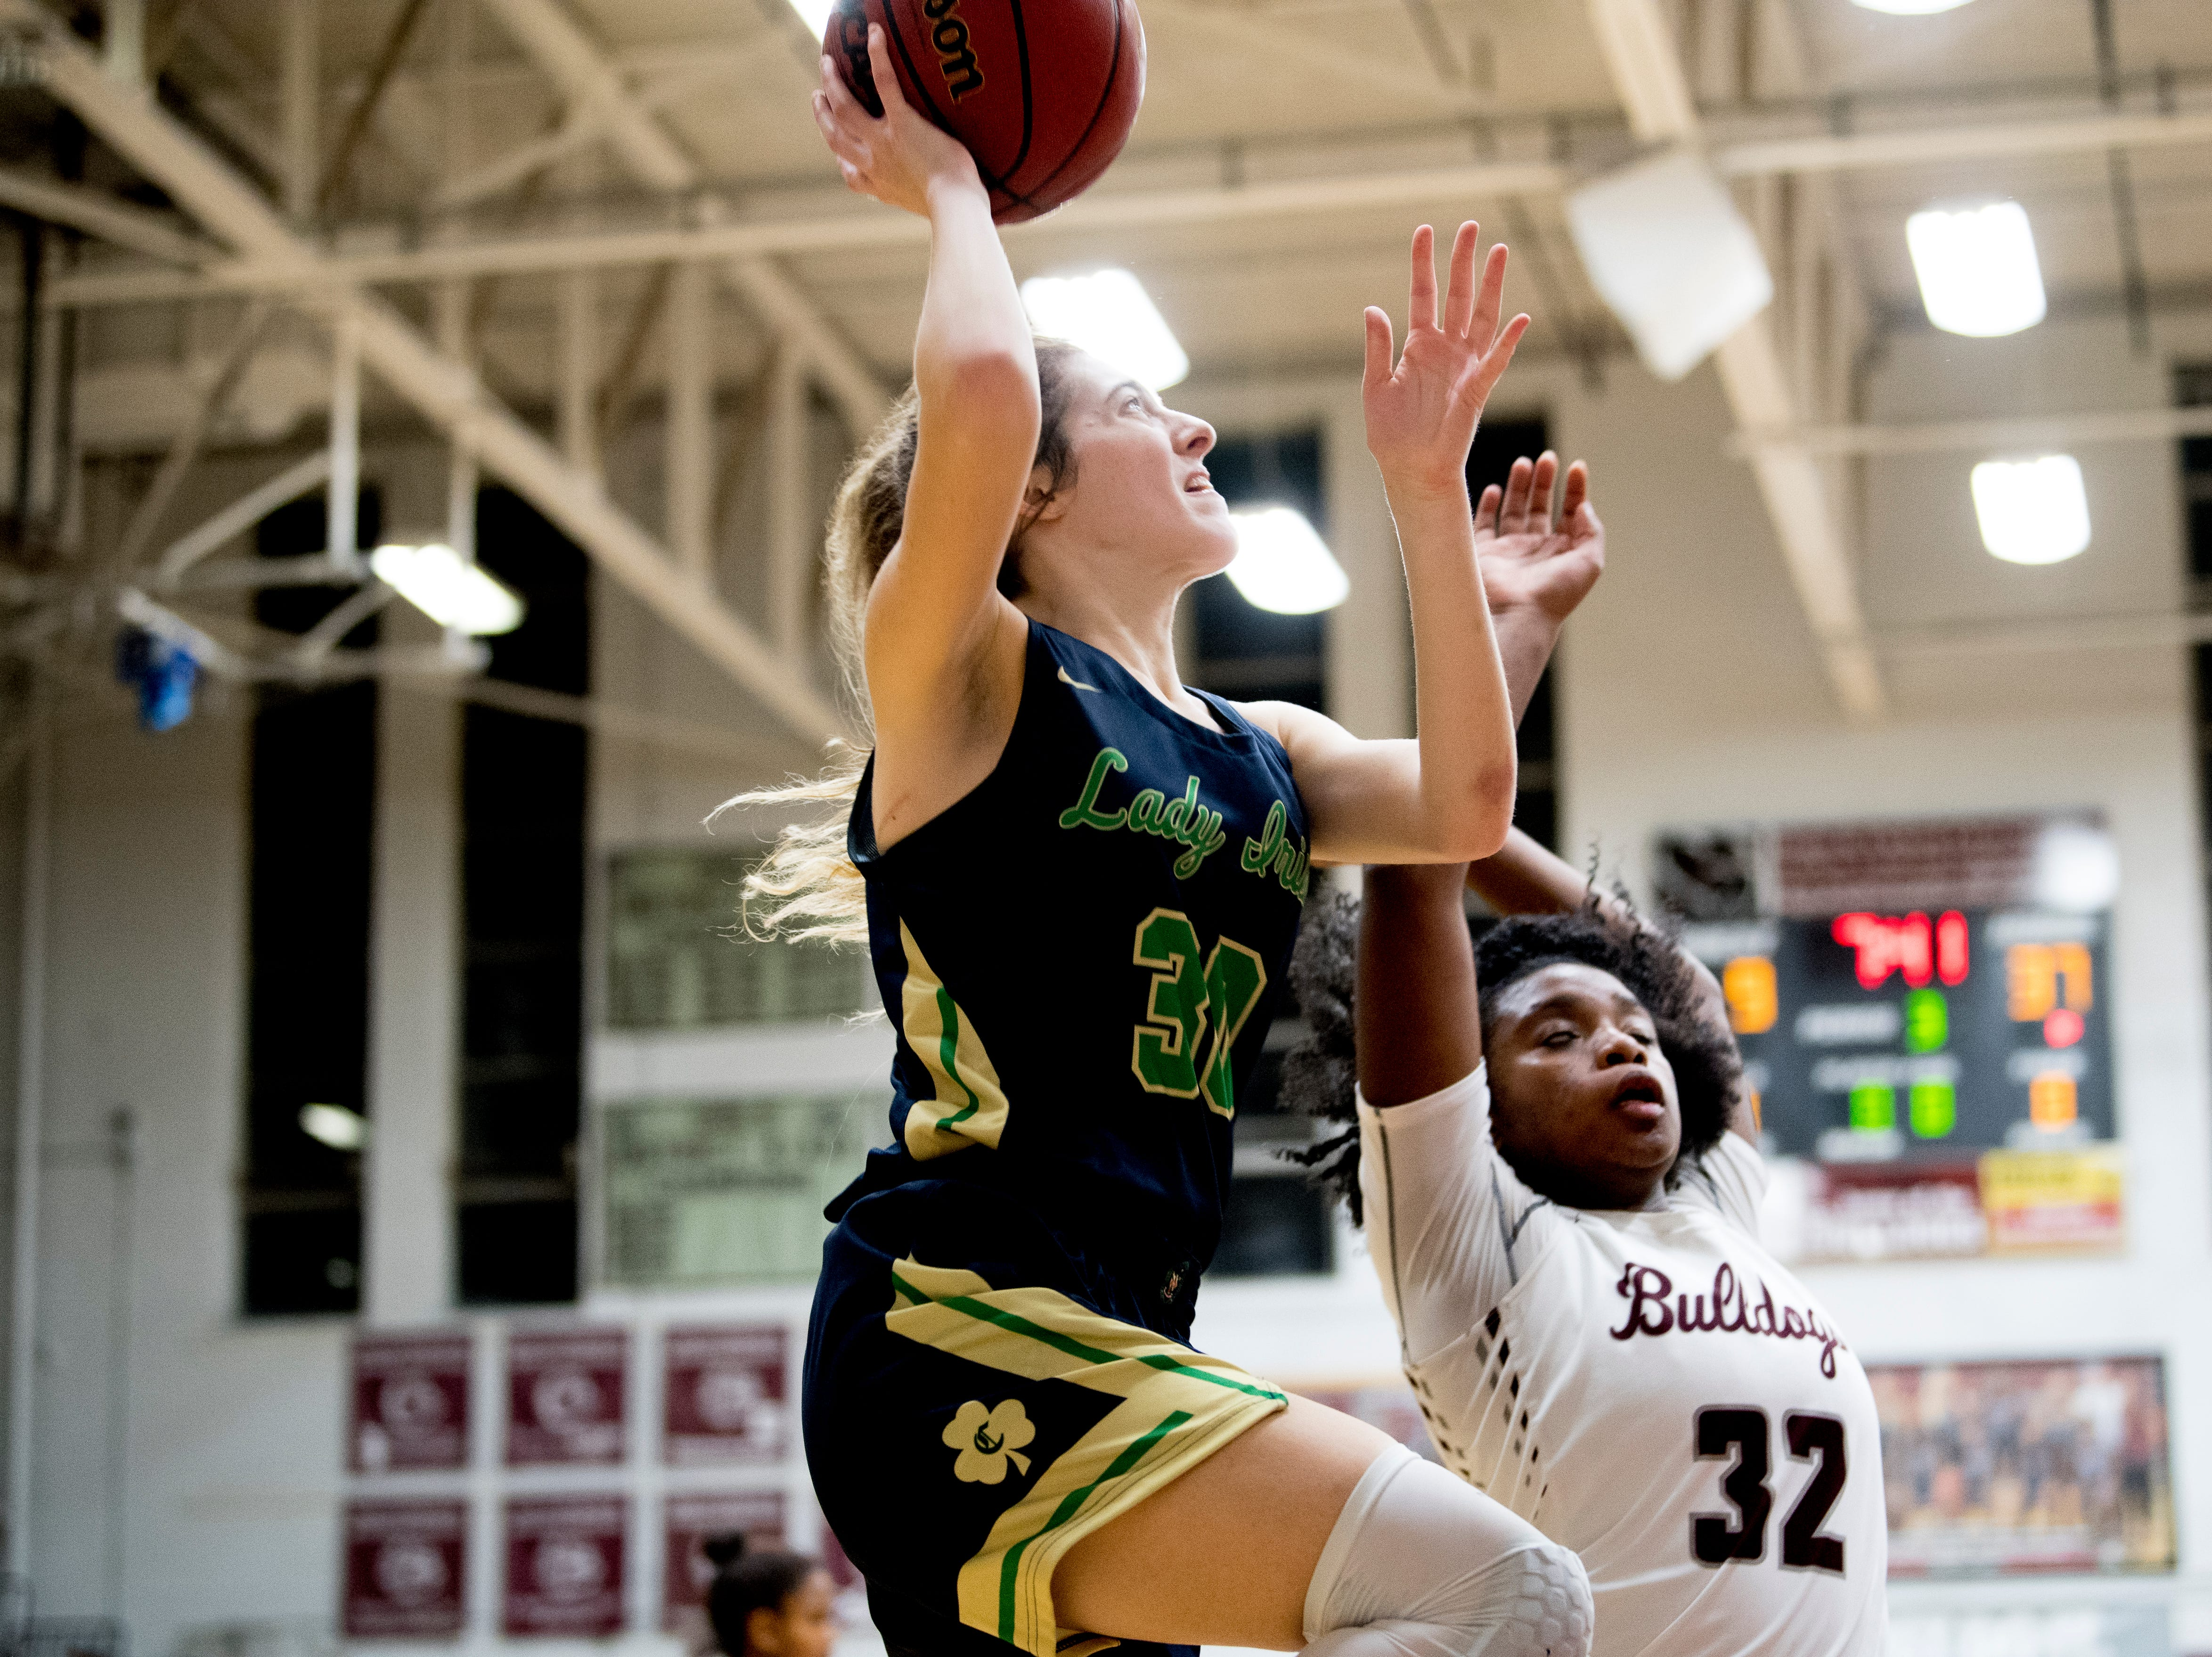 Catholic's Emily Pichiarella (30) goes for a layup as Bearden's Tytiaira Spikes (32) defends during a game between Bearden and Catholic at Bearden High School in Knoxville, Tennessee on Thursday, January 10, 2019.